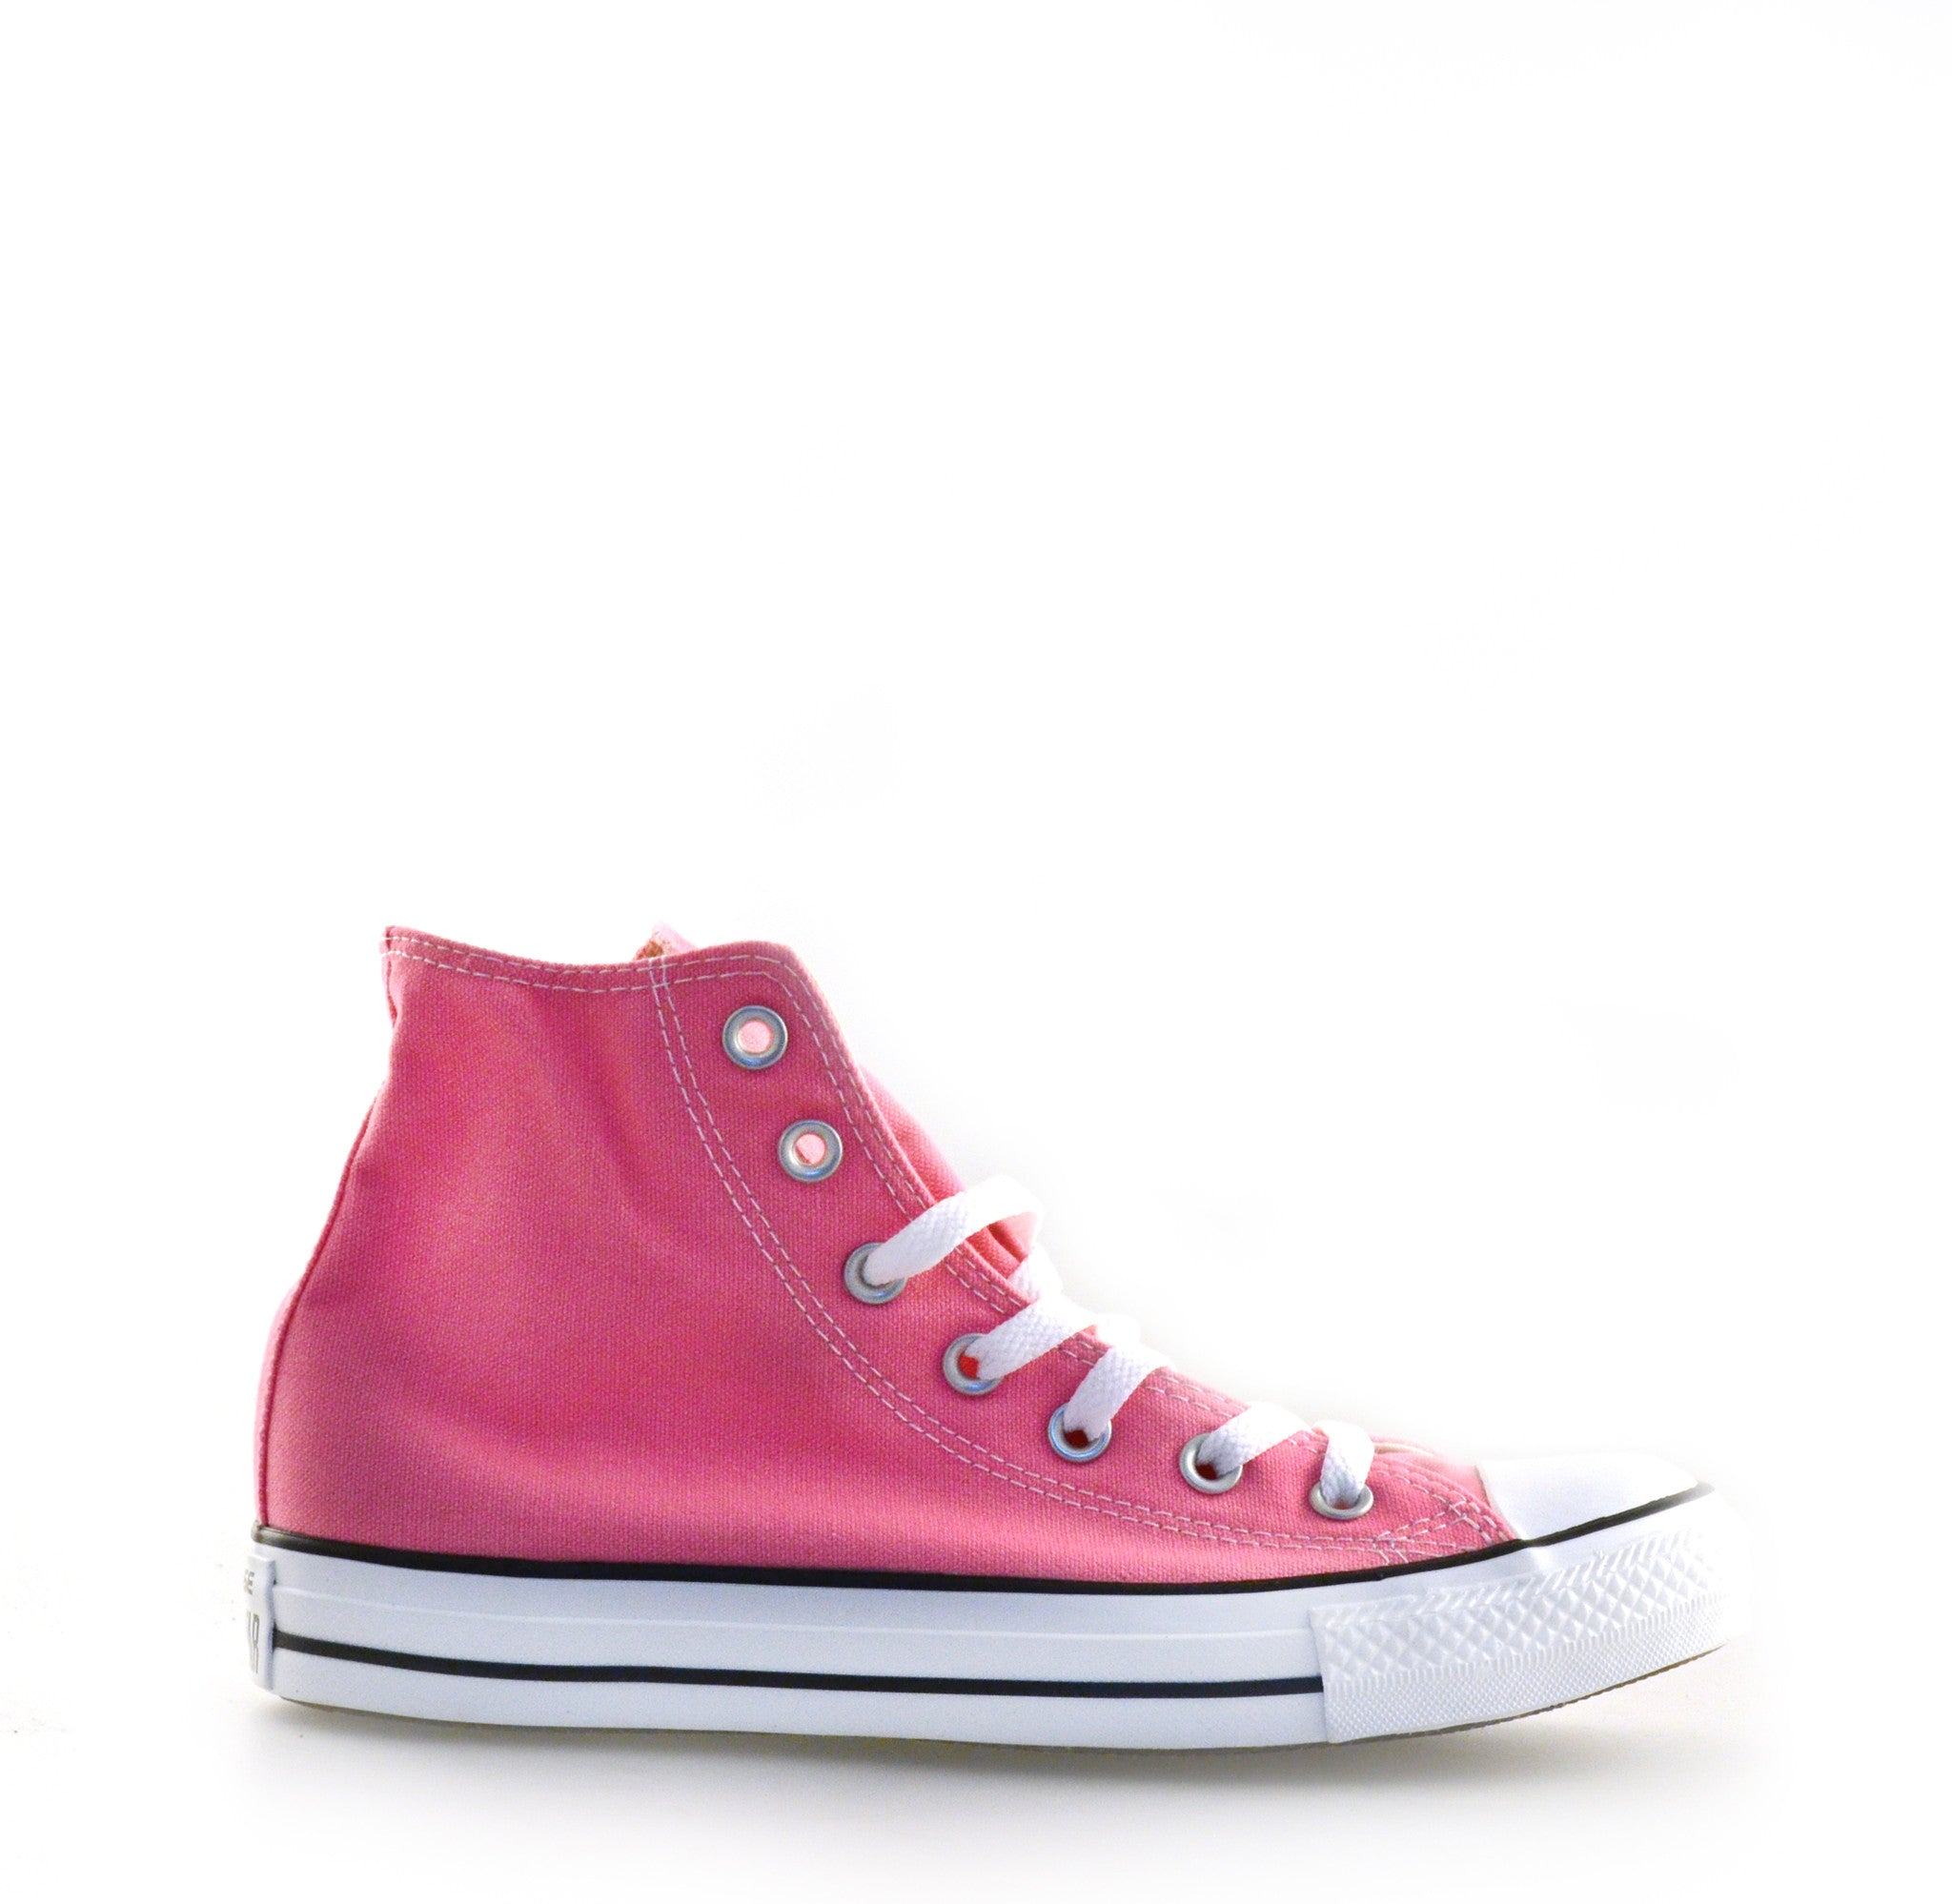 CONVERSE CHUCK TAYLOR ALL STAR HIGH TOP